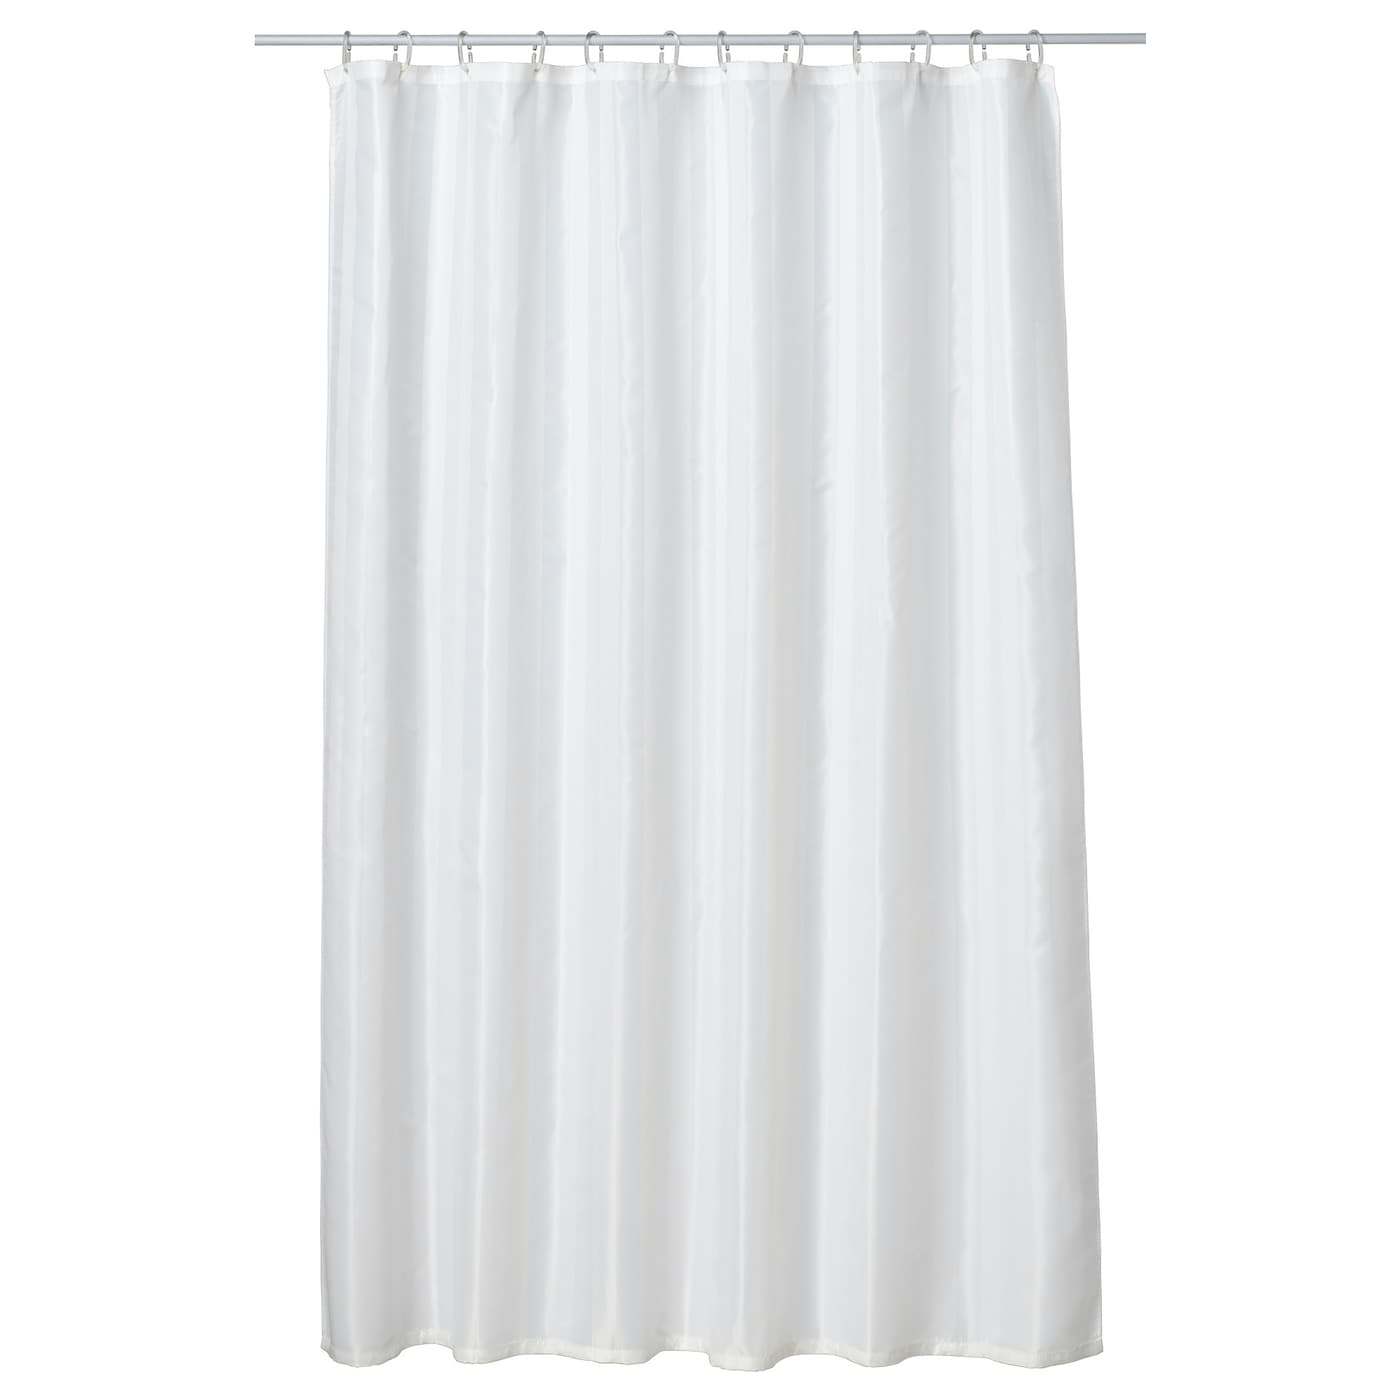 Shower Curtains Ikea Ireland Dublin